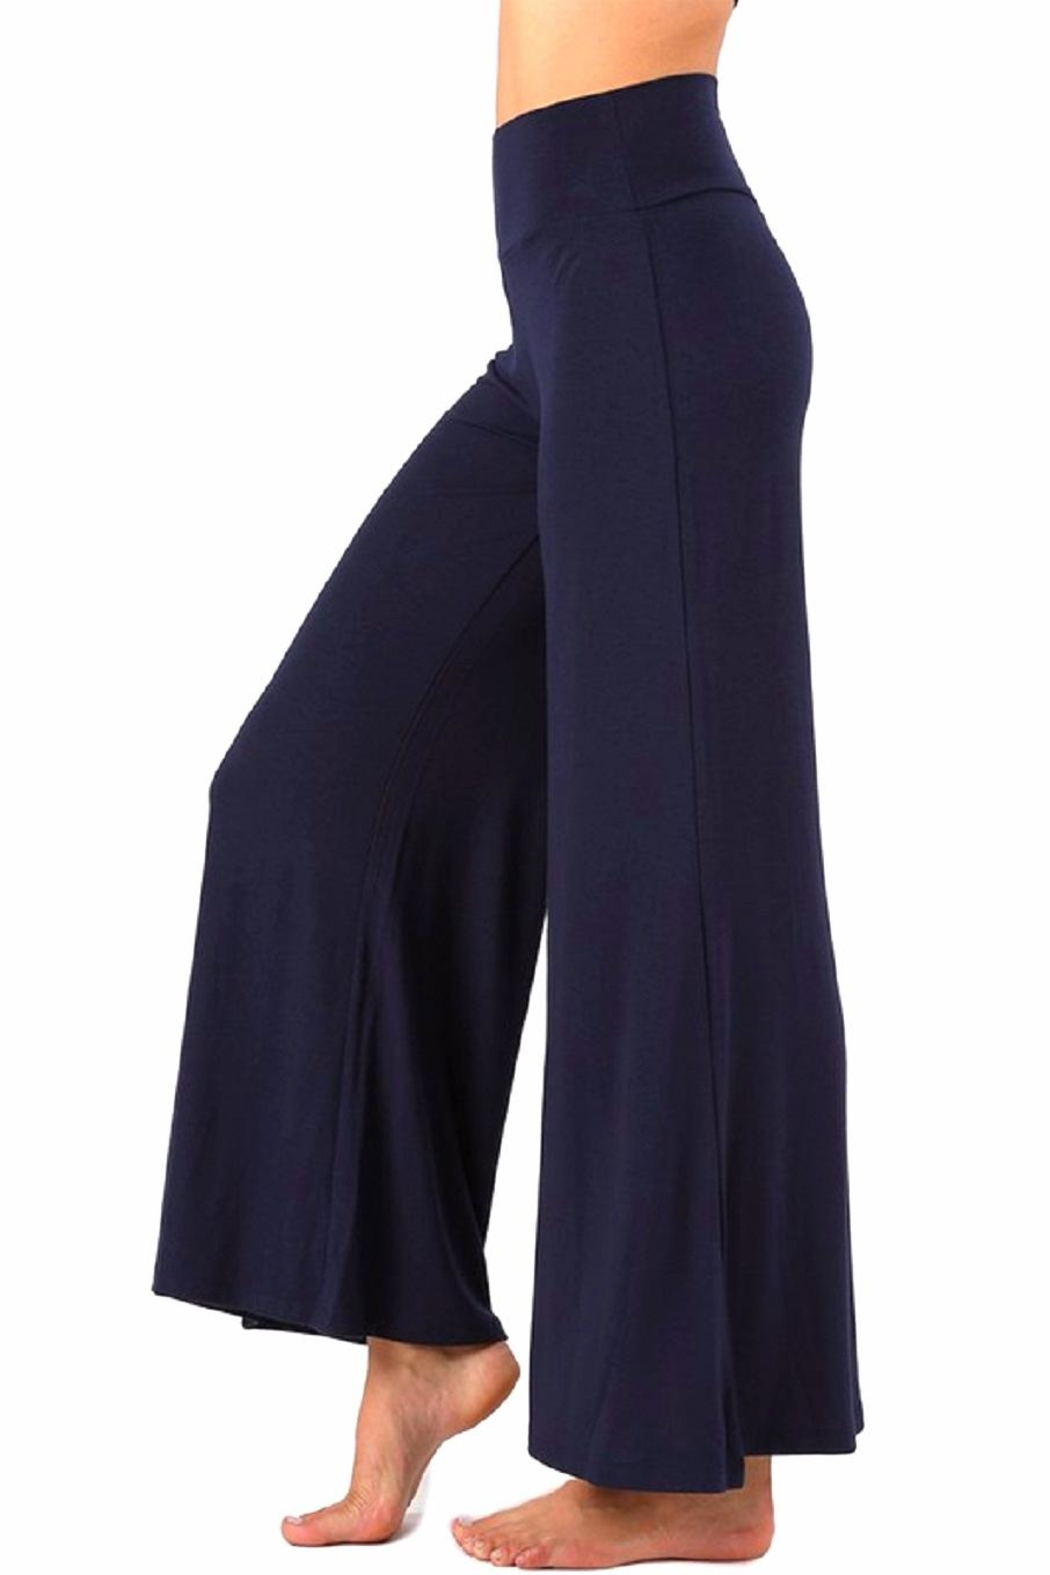 Zenana Outfitters Comfy Palazzo Pants - Front Cropped Image